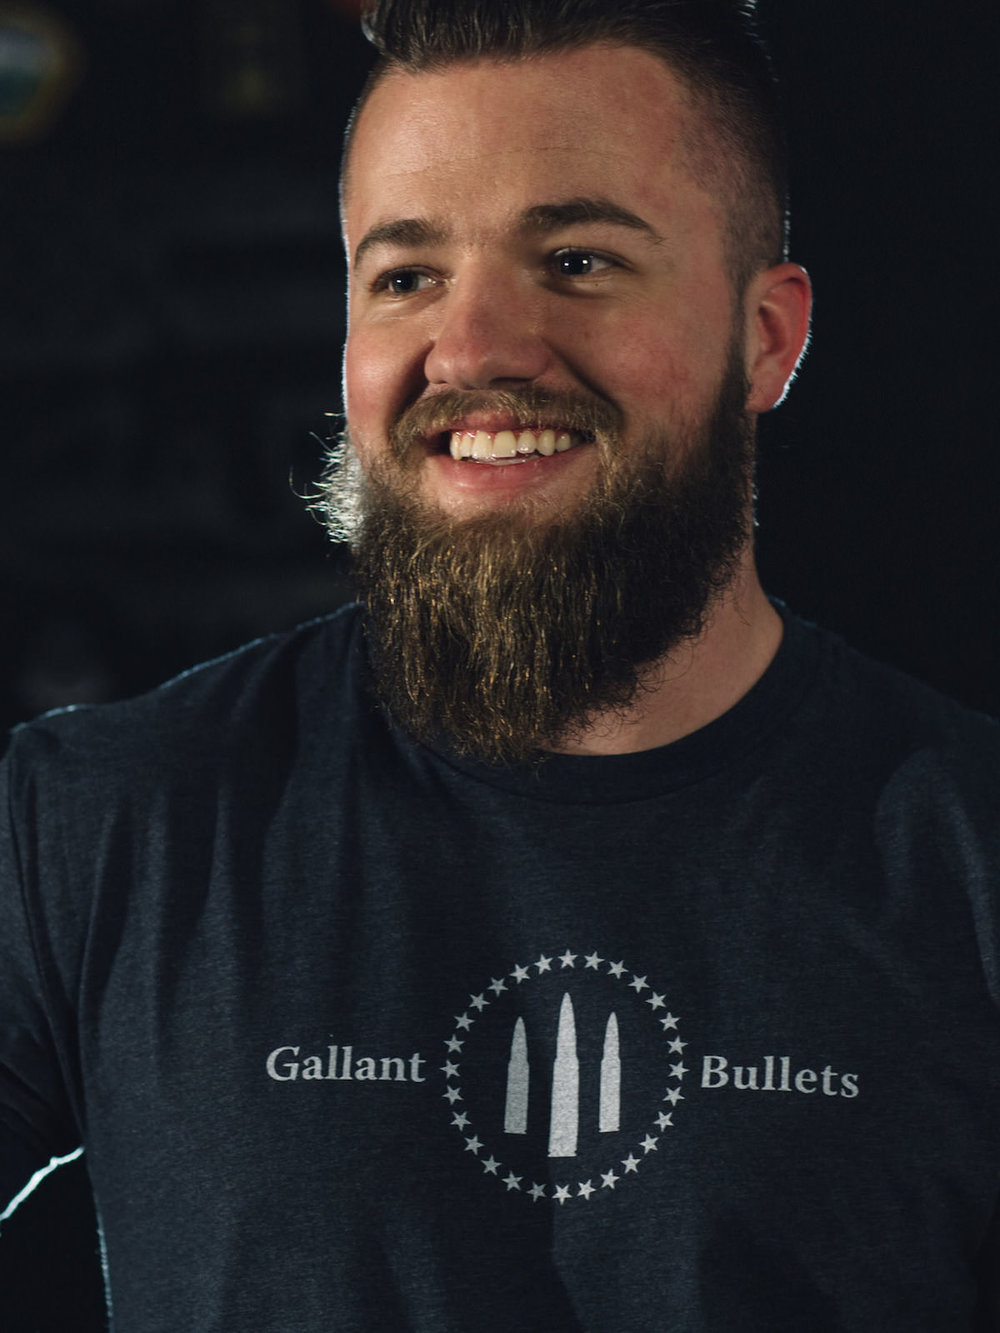 GALLANT BULLETS MEN'S FIRST ORIGINAL T-SHIRT